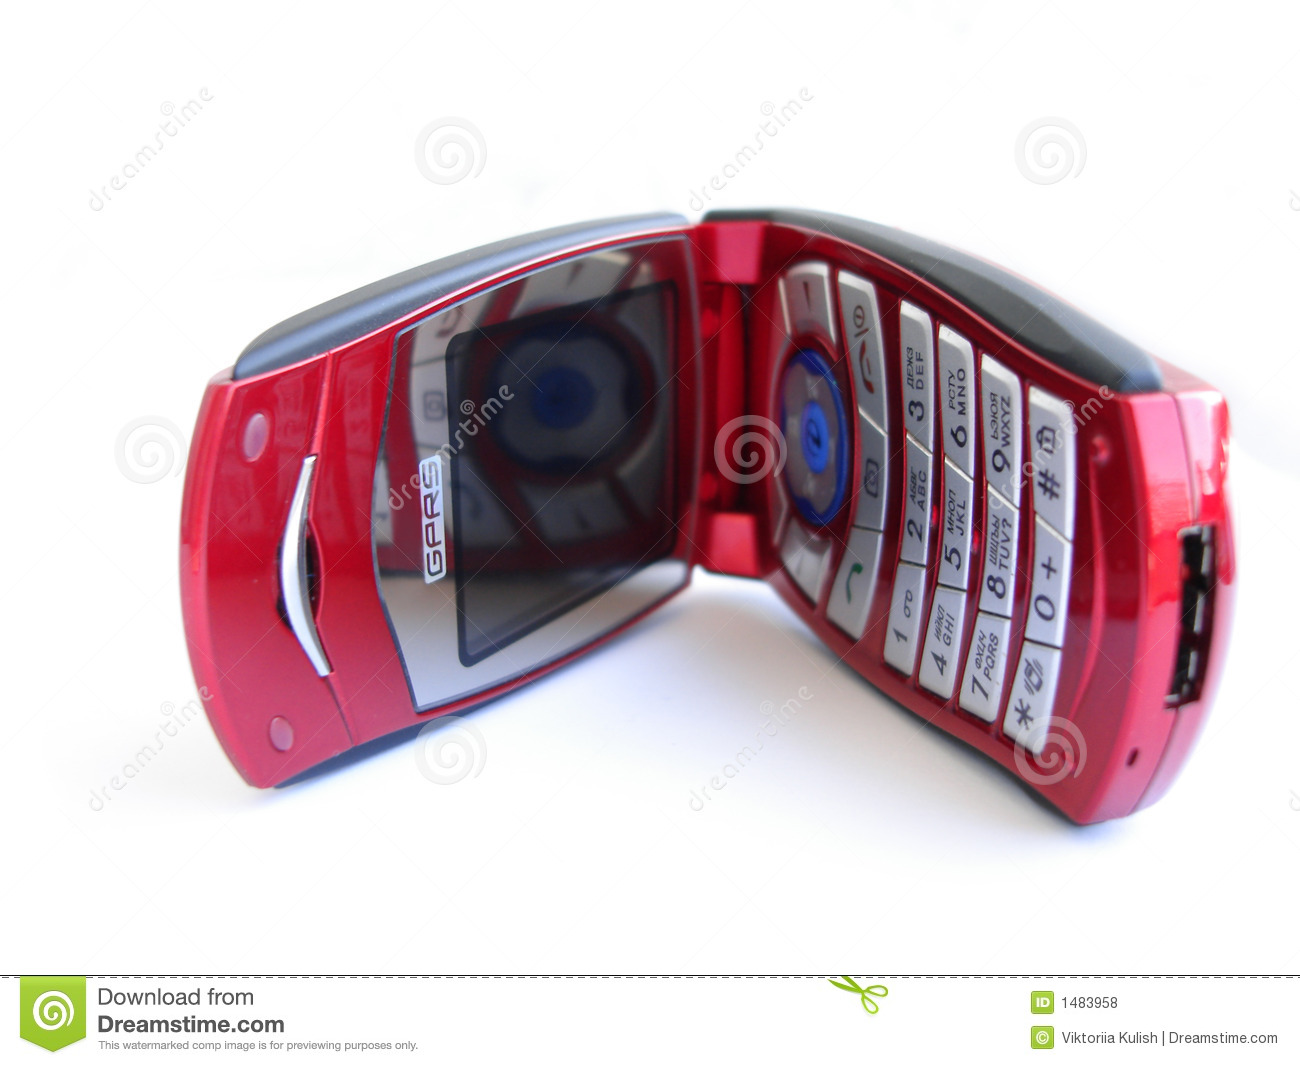 Opened red mobile phone over a white background